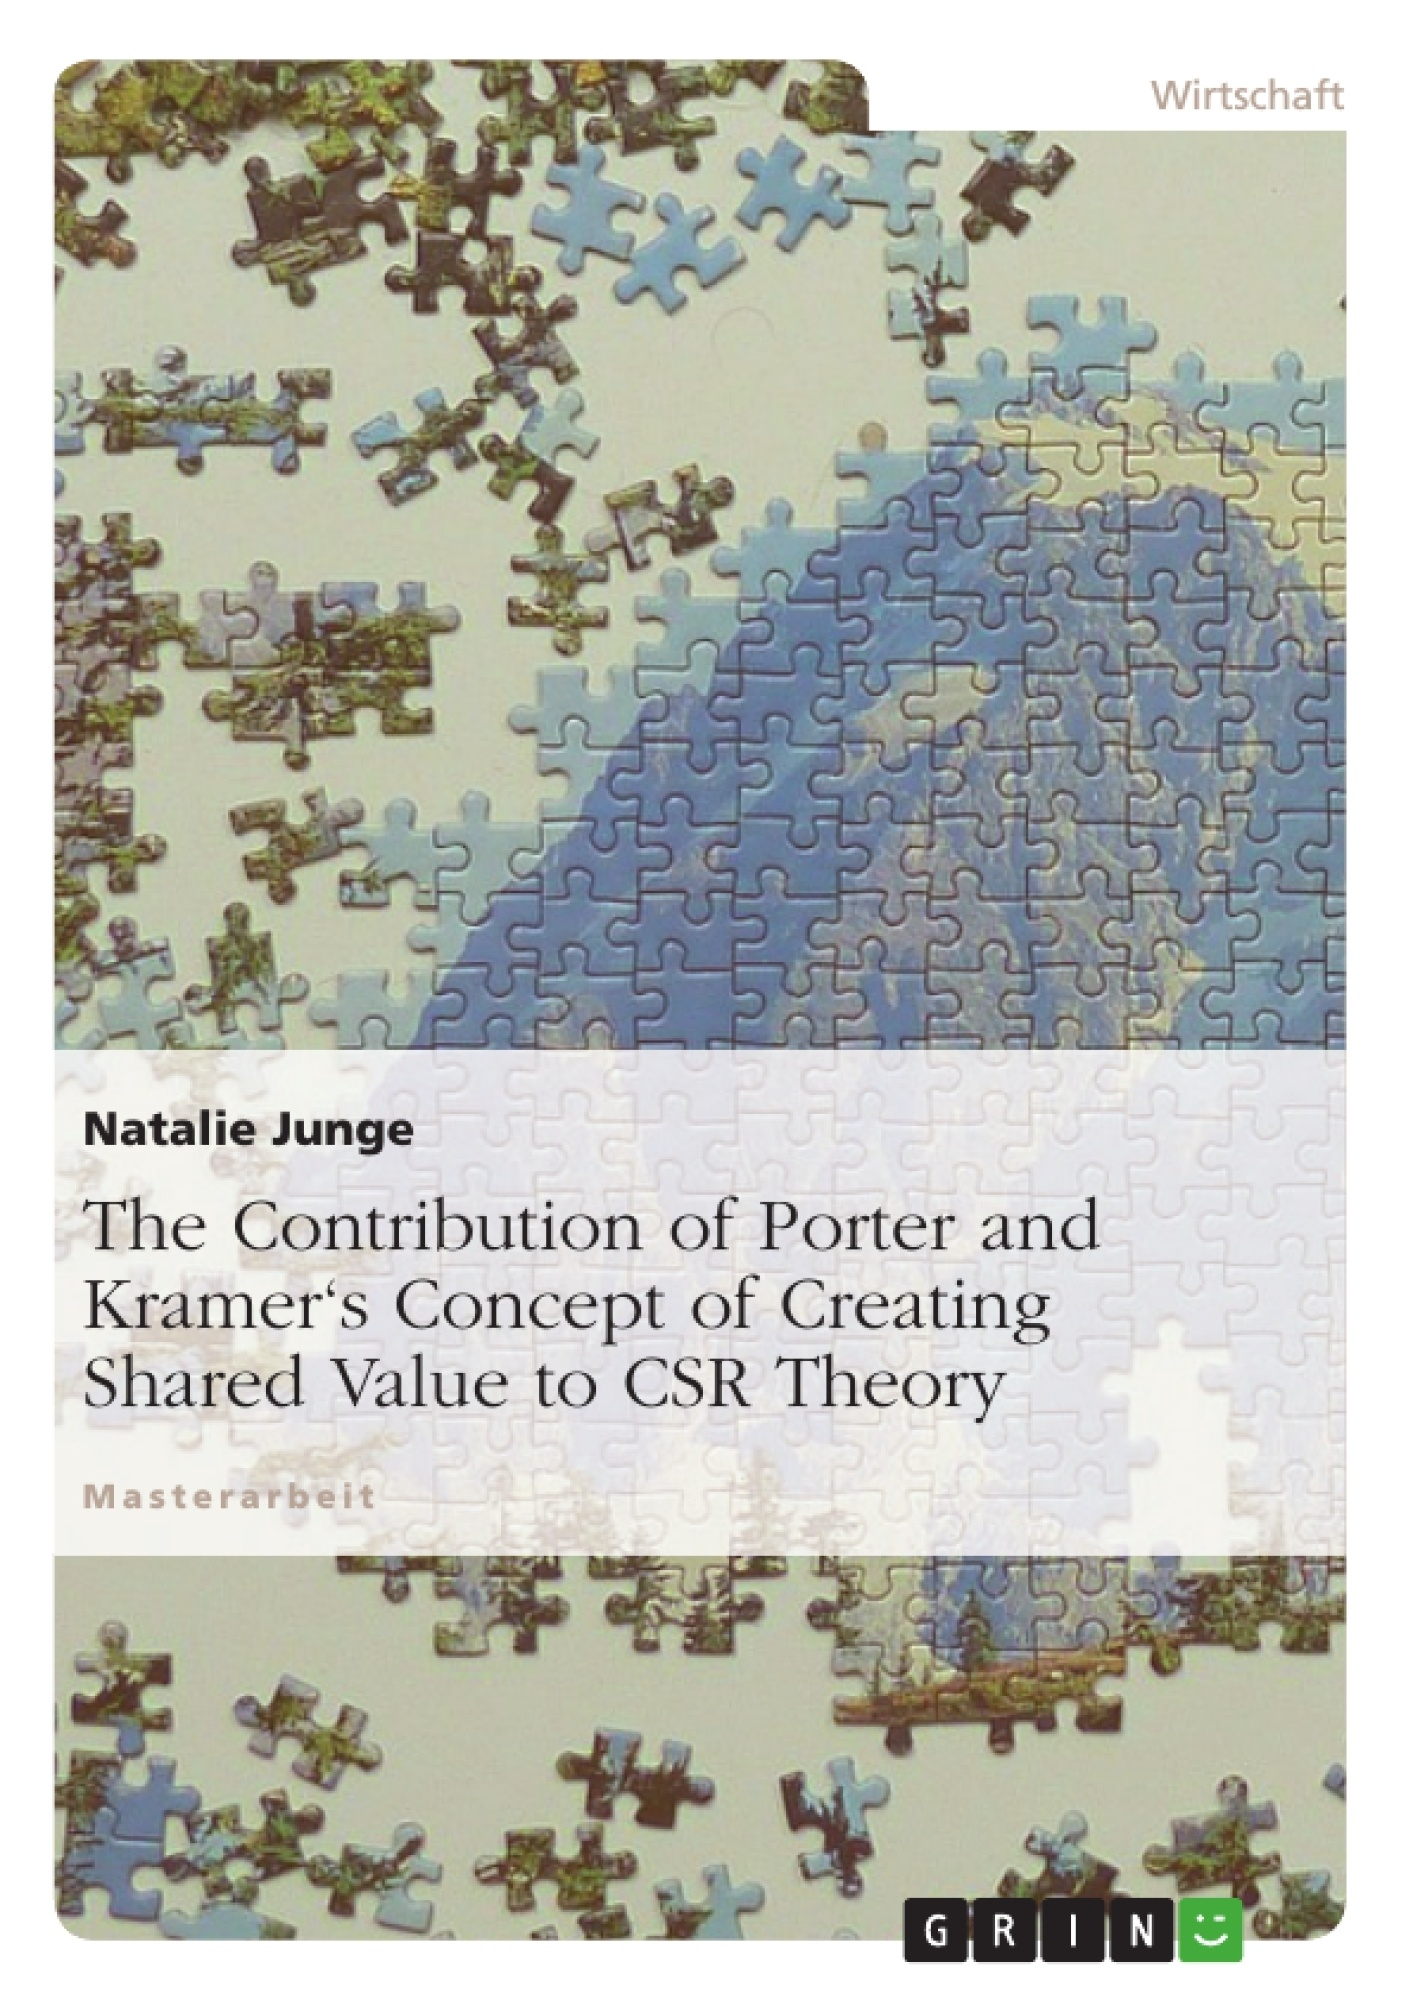 Title: The Contribution of Porter and Kramer's Concept of Creating Shared Value to CSR Theory